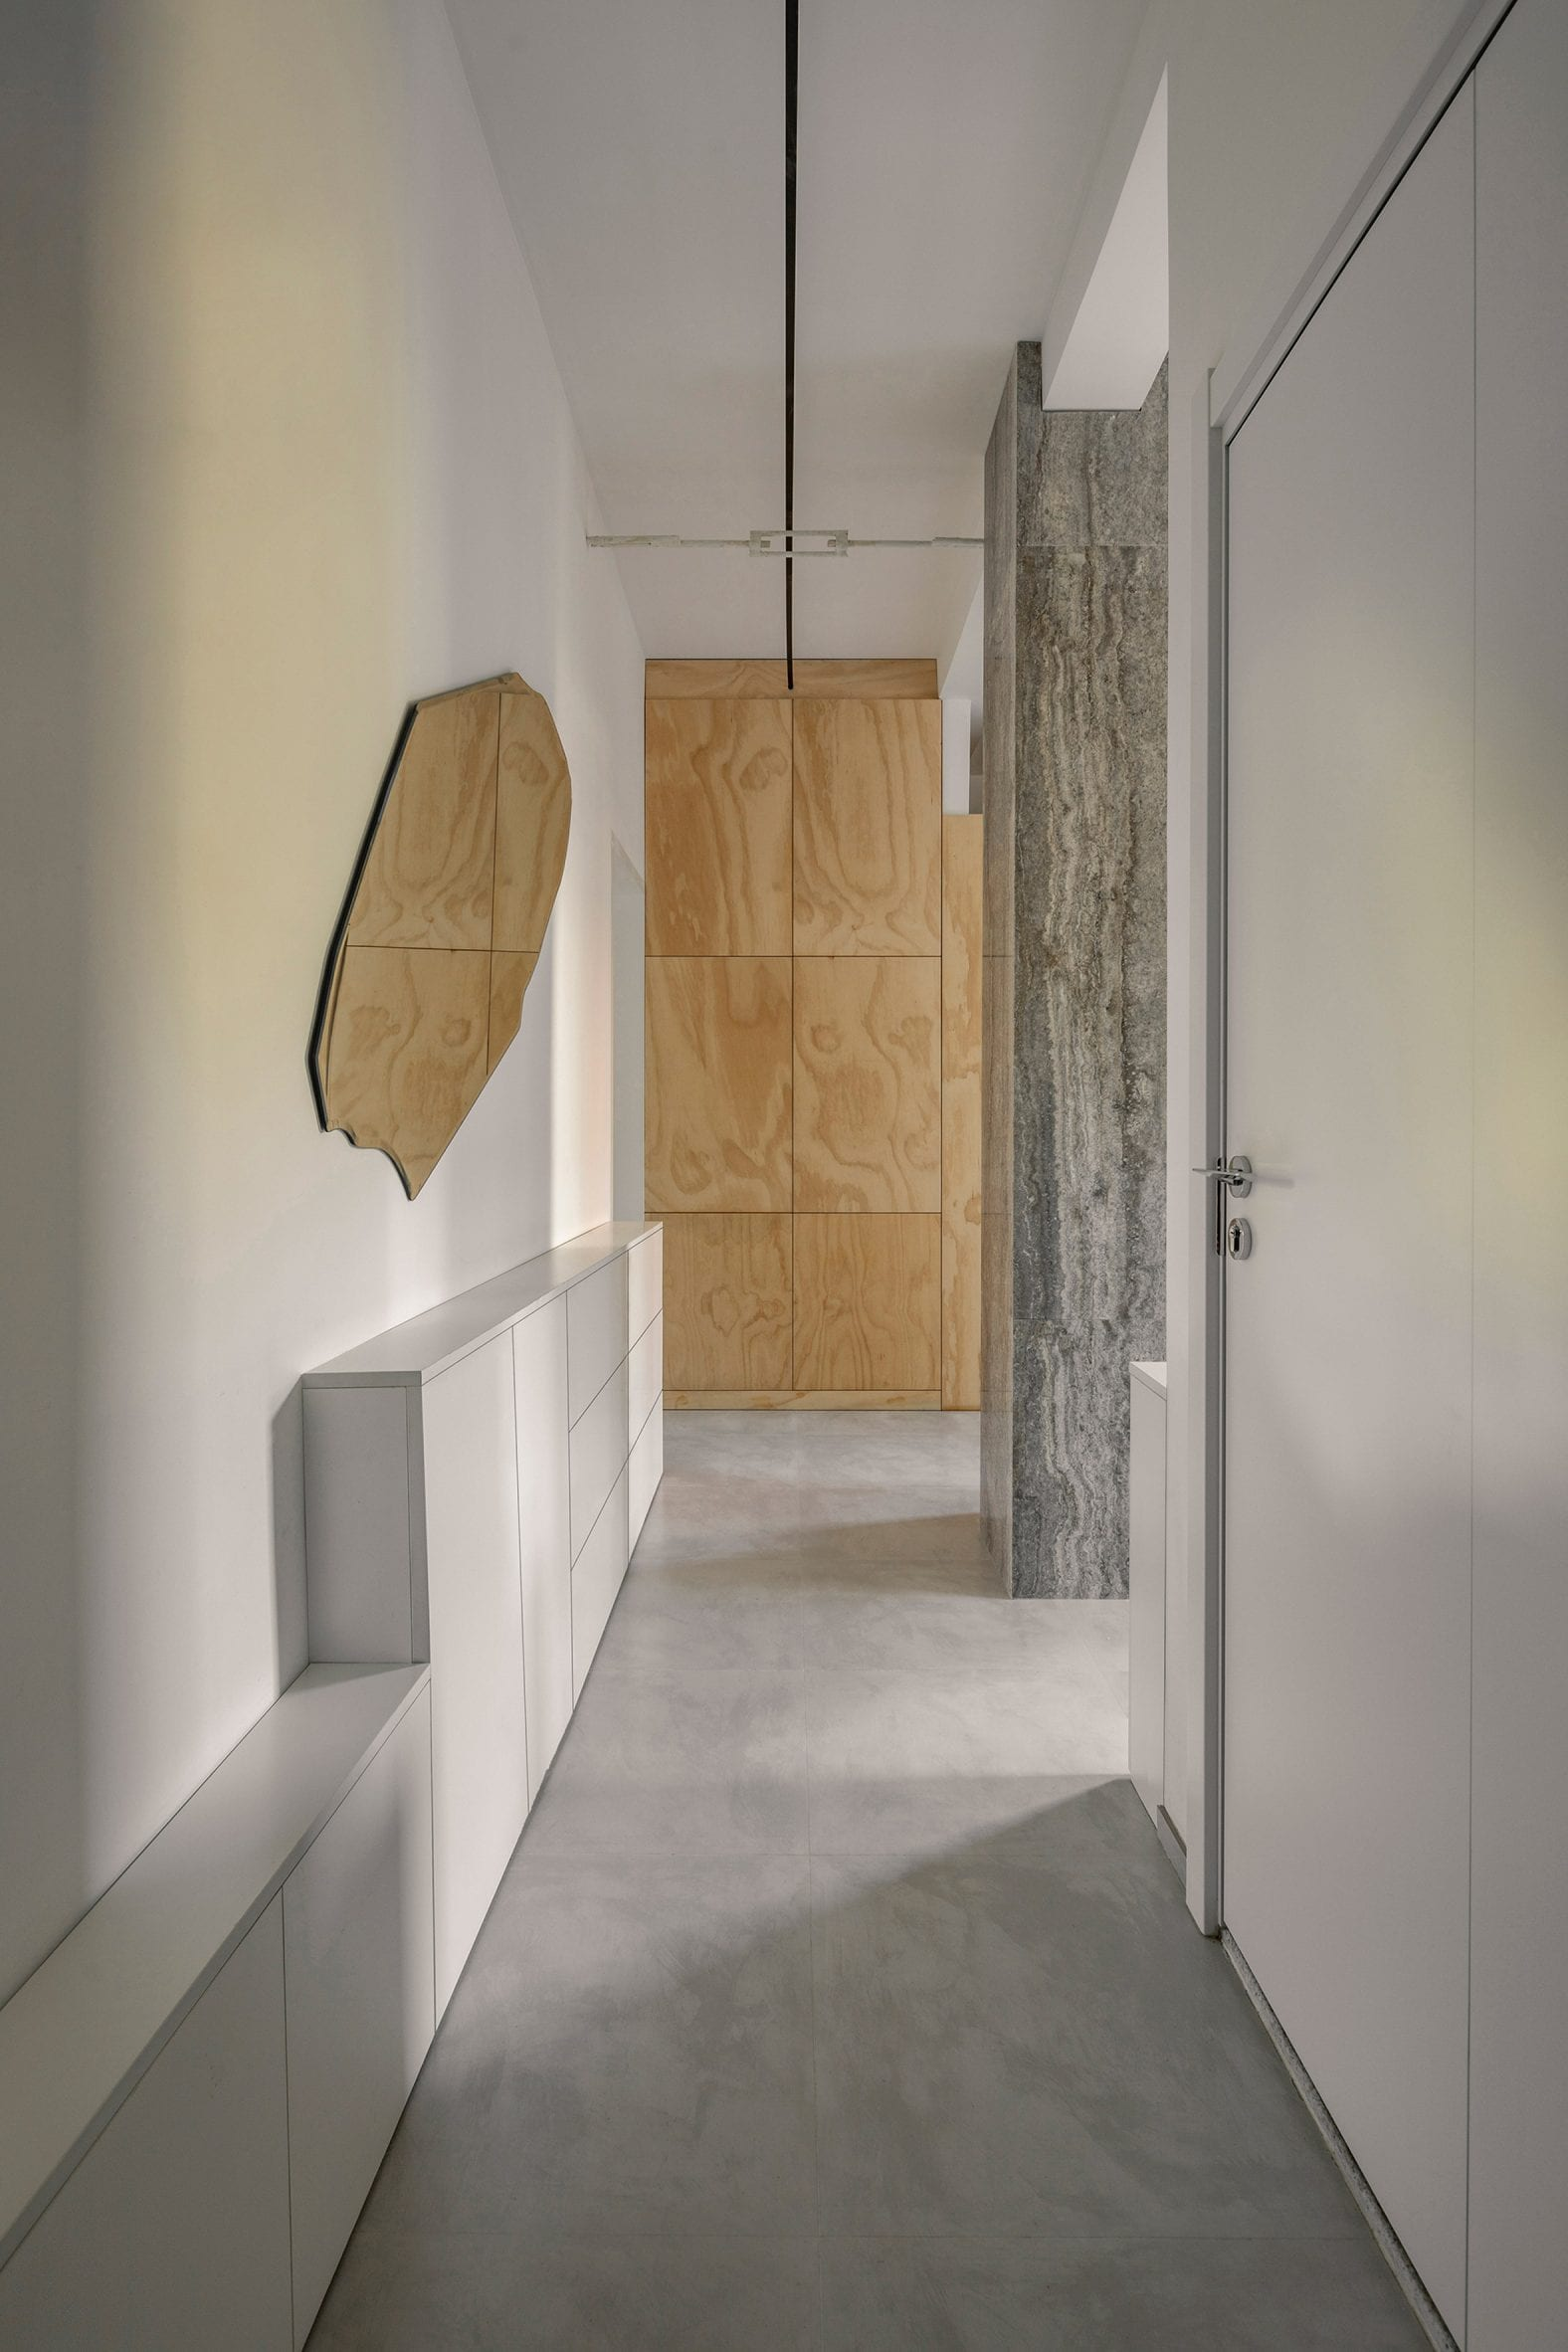 Entryway with concrete floor, white walls and plywood joinery in post-war Beijing apartment